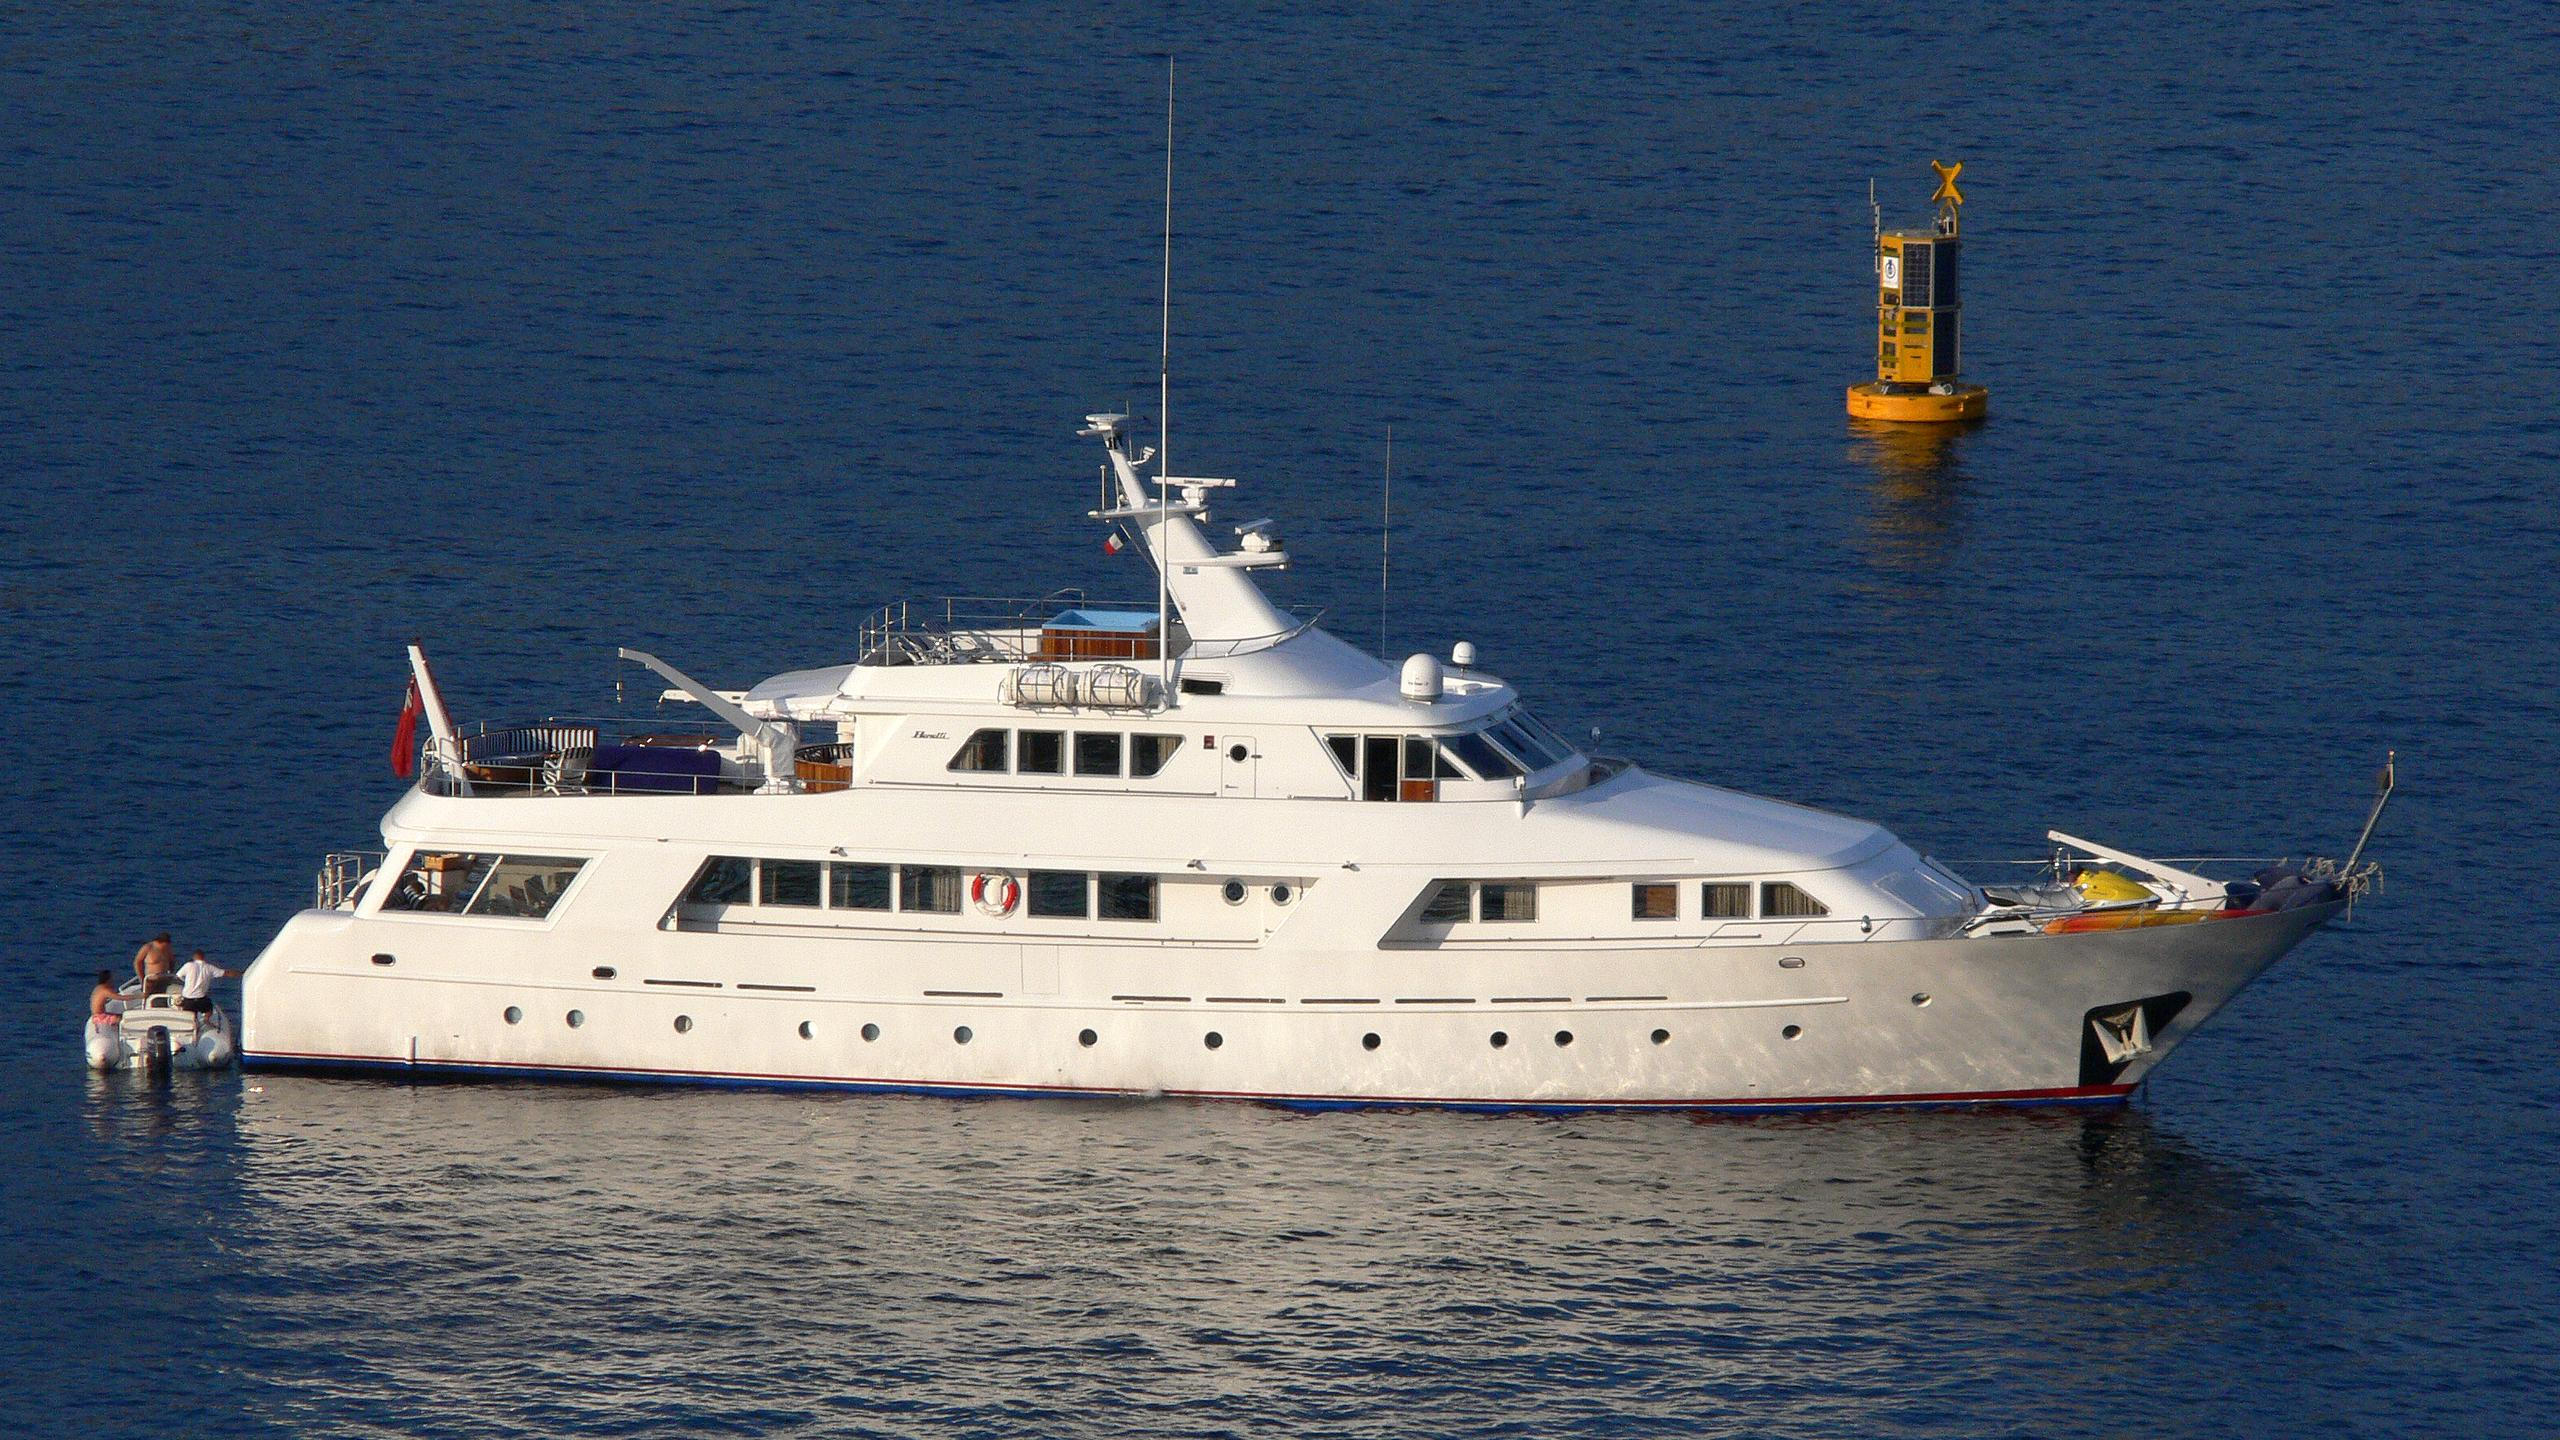 star-of-the-sea-motor-yacht-benetti-1983-34m-profile